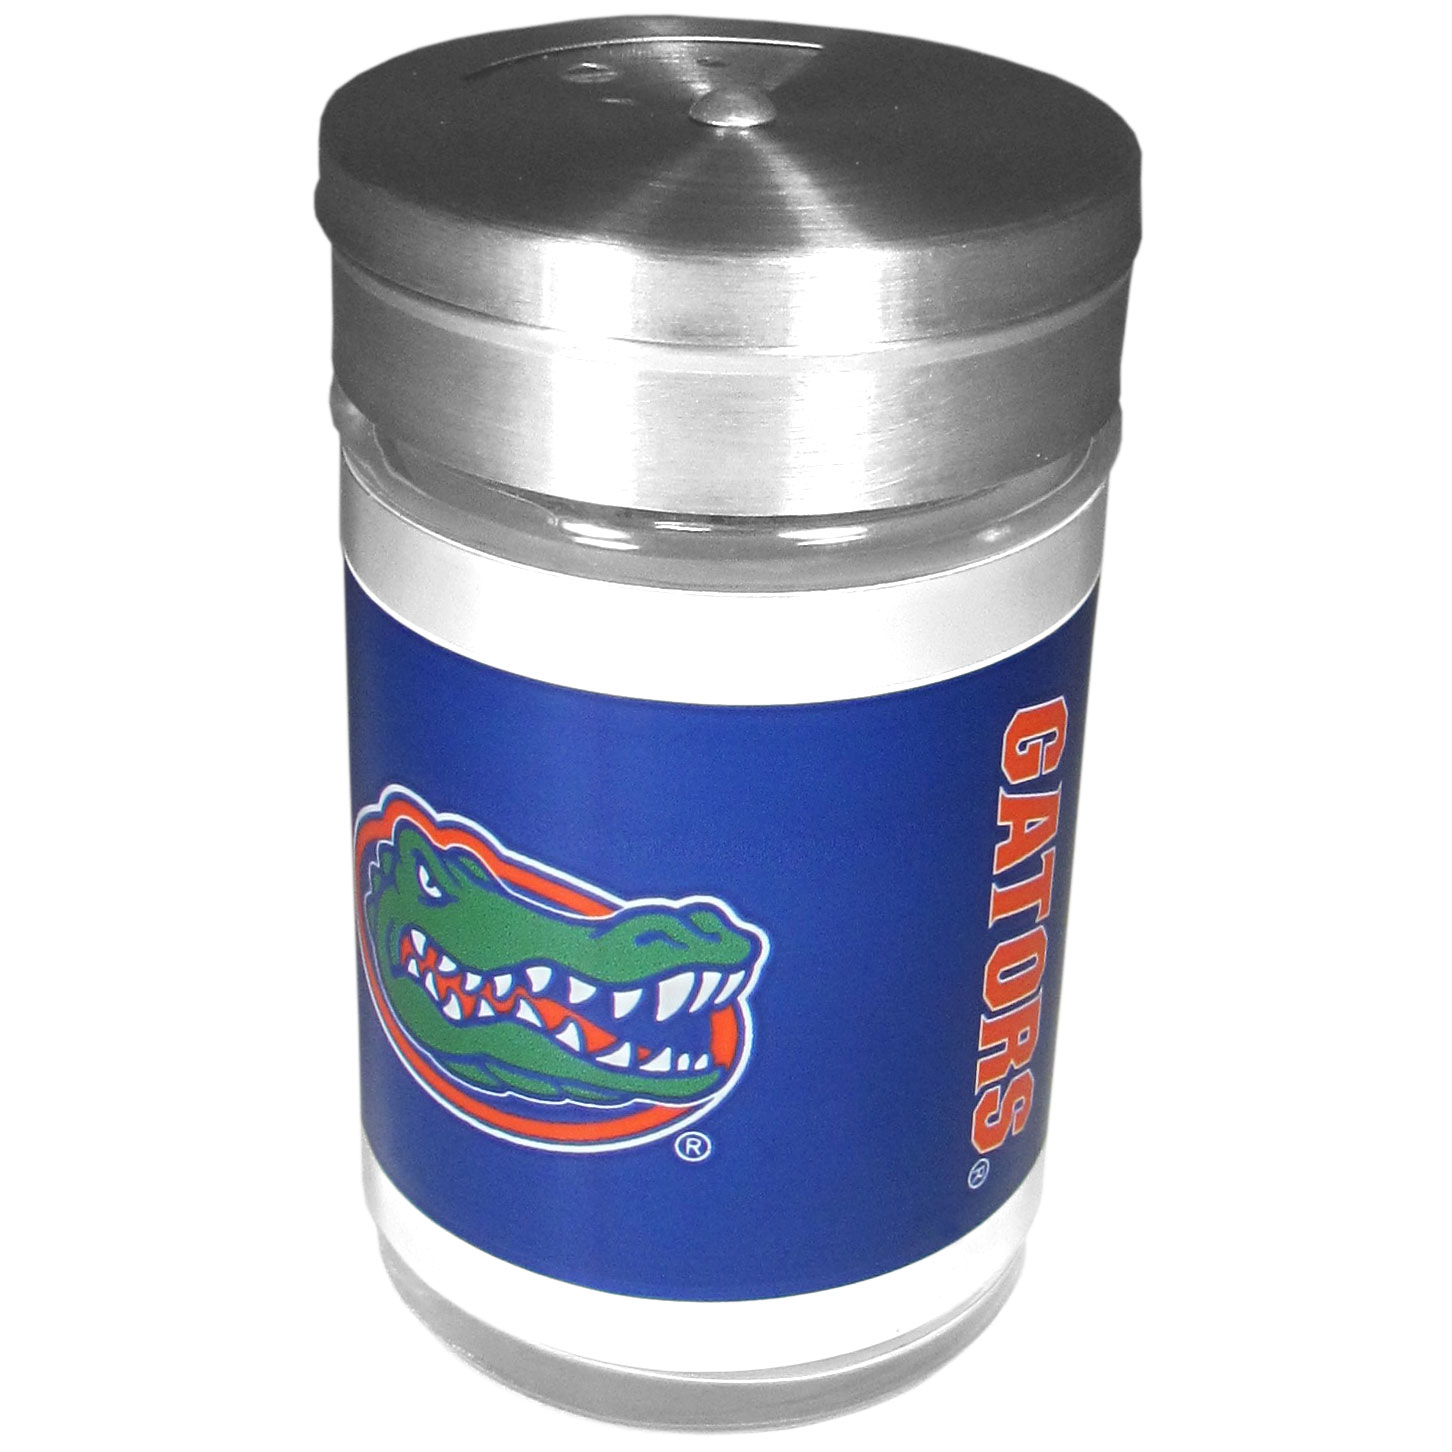 Florida Gators Tailgater Season Shakers - Spice it up with our Florida Gators tailgater season shakers! This compact shaker is 2 inch tall with a twist top that closes off the holes at the top making it perfect for travel preventing those messy spills. The shaker has wide holes perfect for keeping your pepper seeds or cheese toppings. The bright team graphics will make you the envy of the other fans while you are grilling up your tailgating goodies.